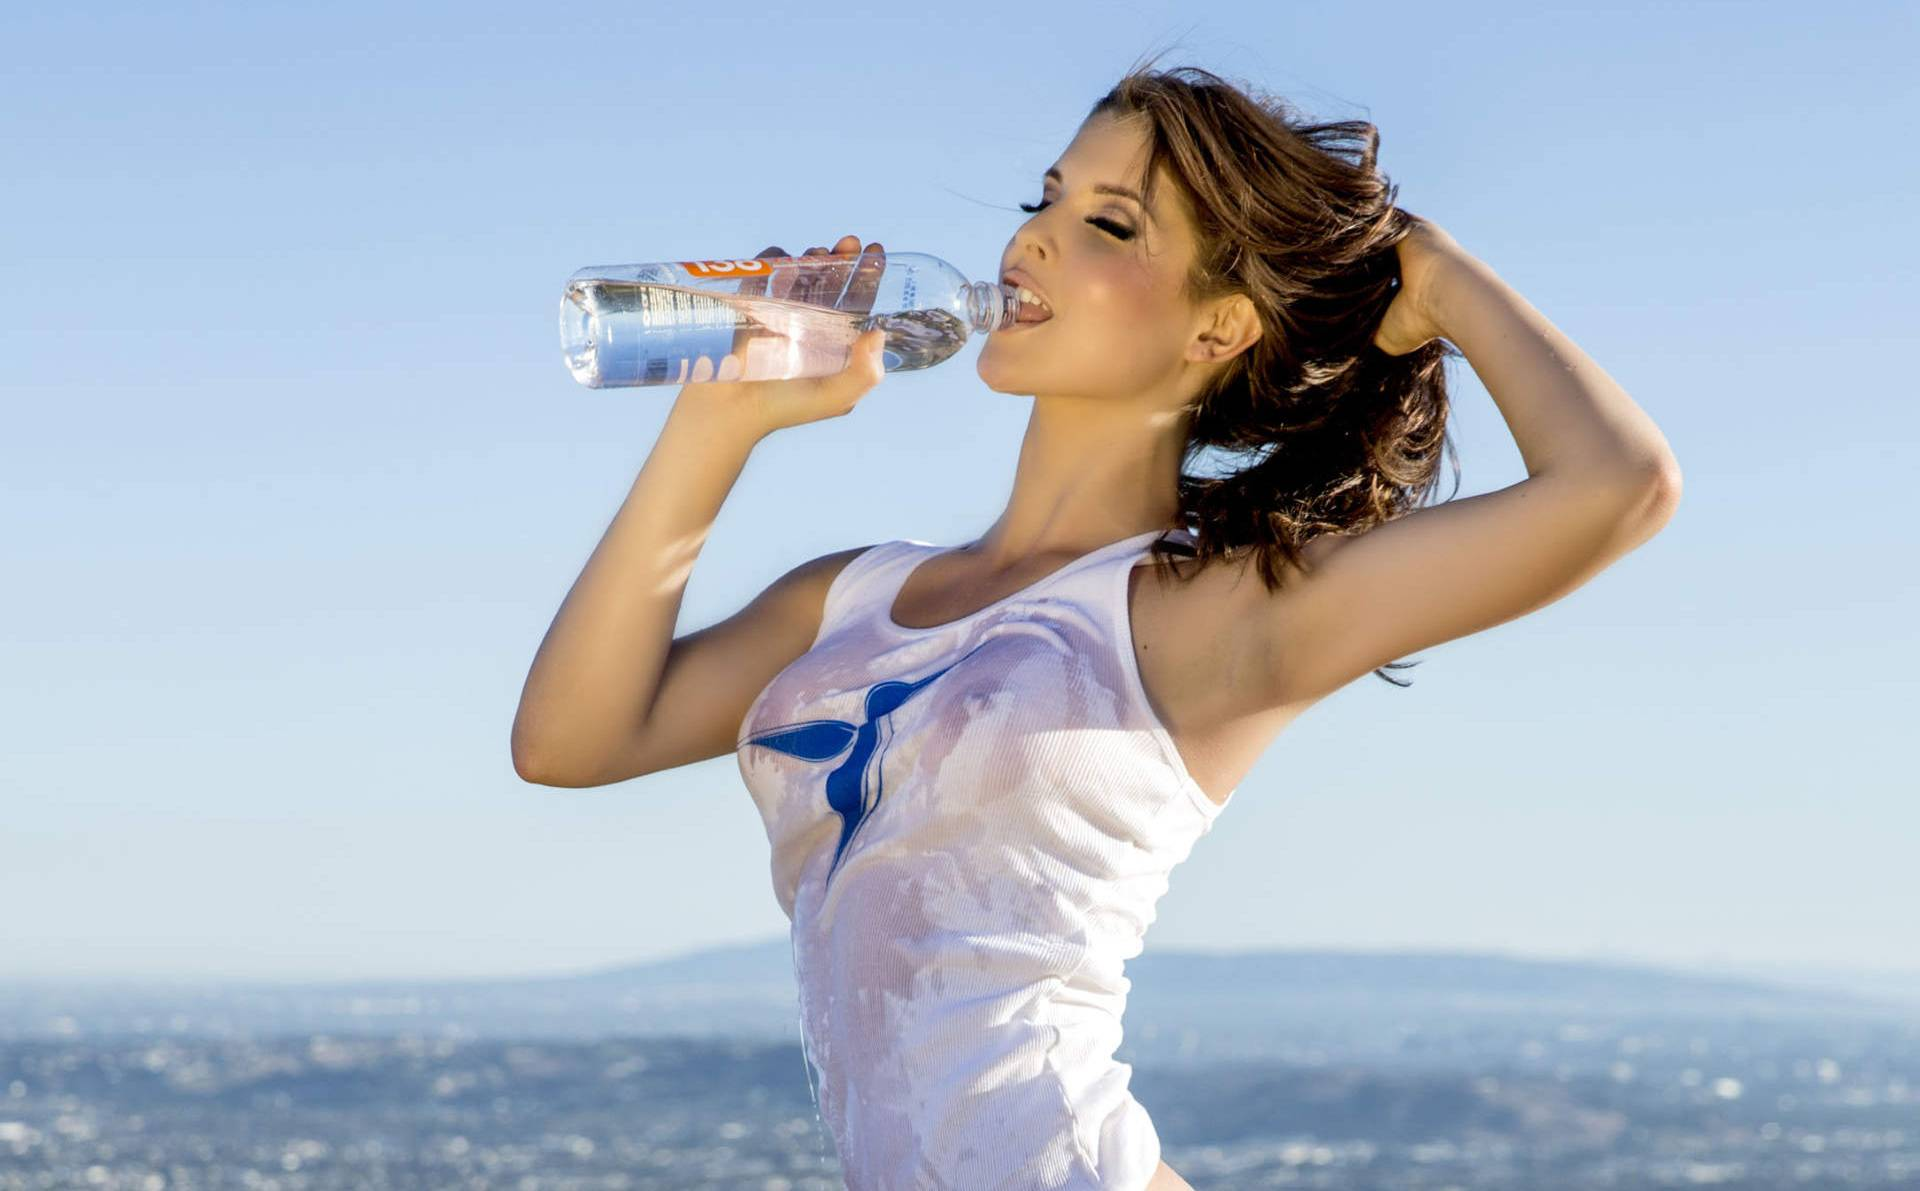 amanda cerny is modeling water too | the blemish